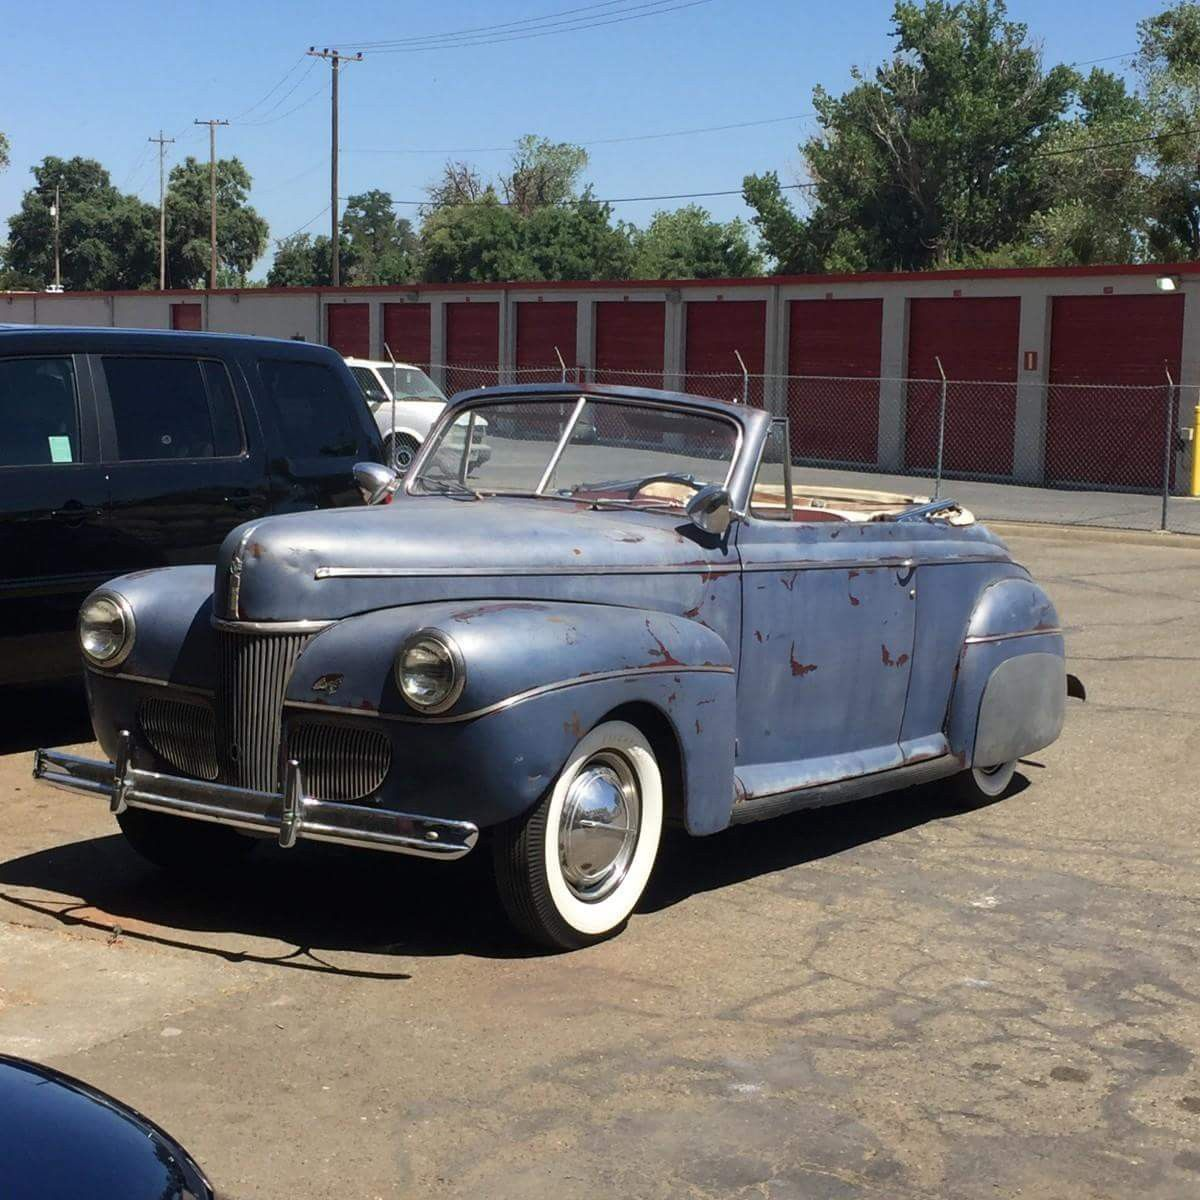 DROP TOP FRIDAY: 1941 Ford Convertible